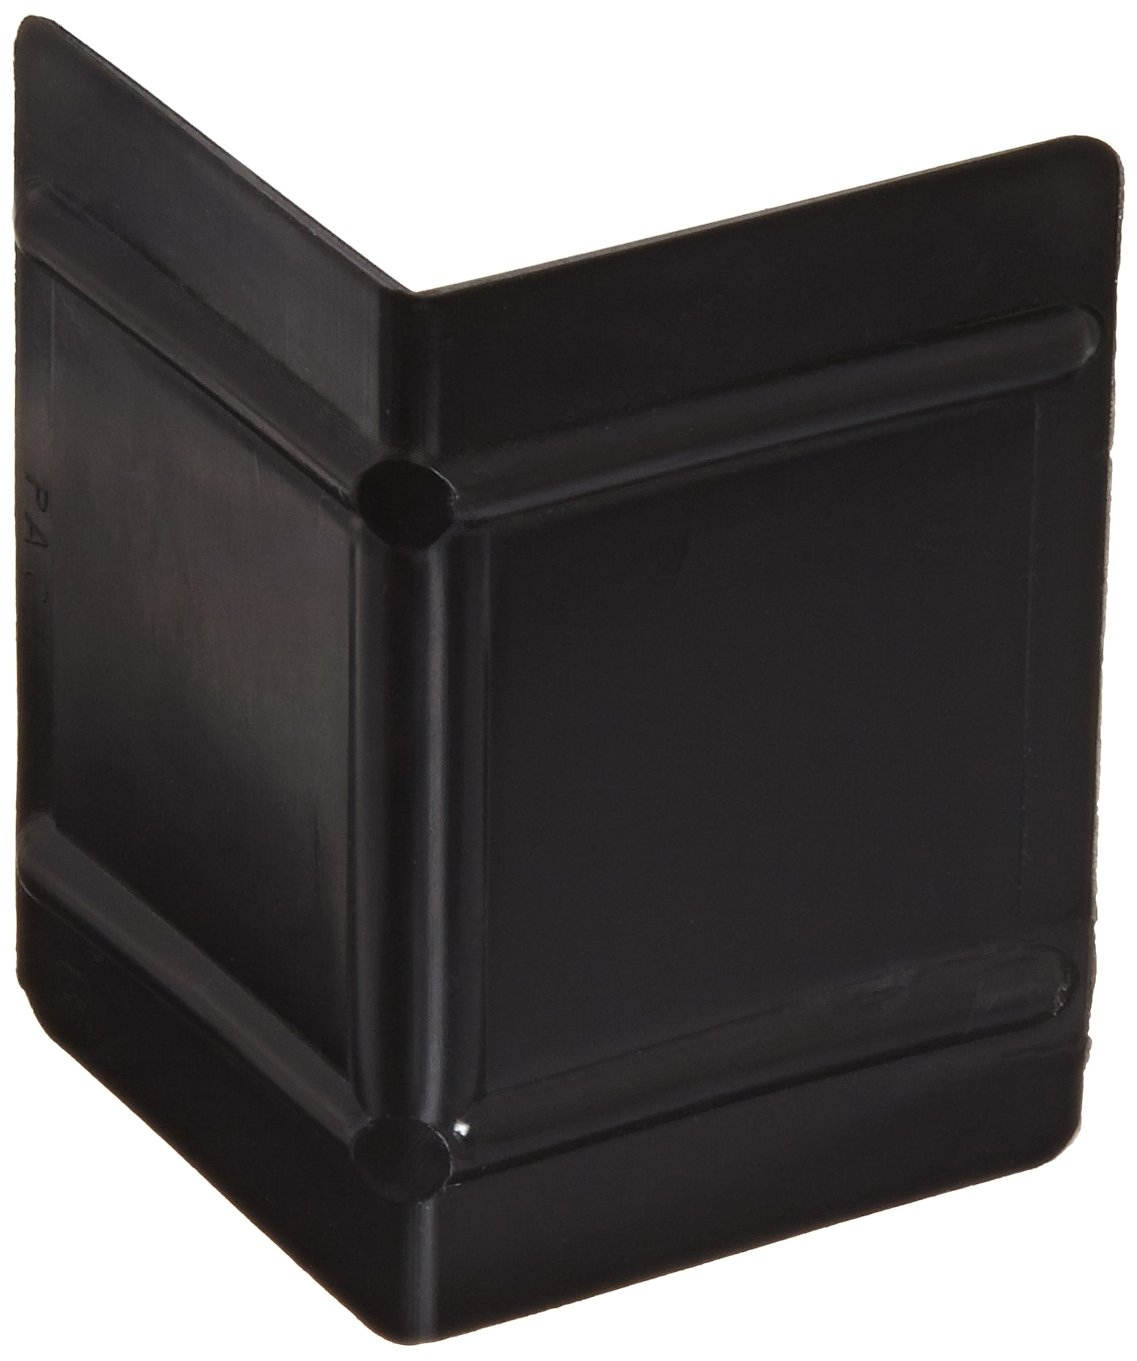 Nifty Products SCP25 Plastic Corner Protector, 1-3/4'' Length x 2-1/2'' Width, Black (Case of 1000)